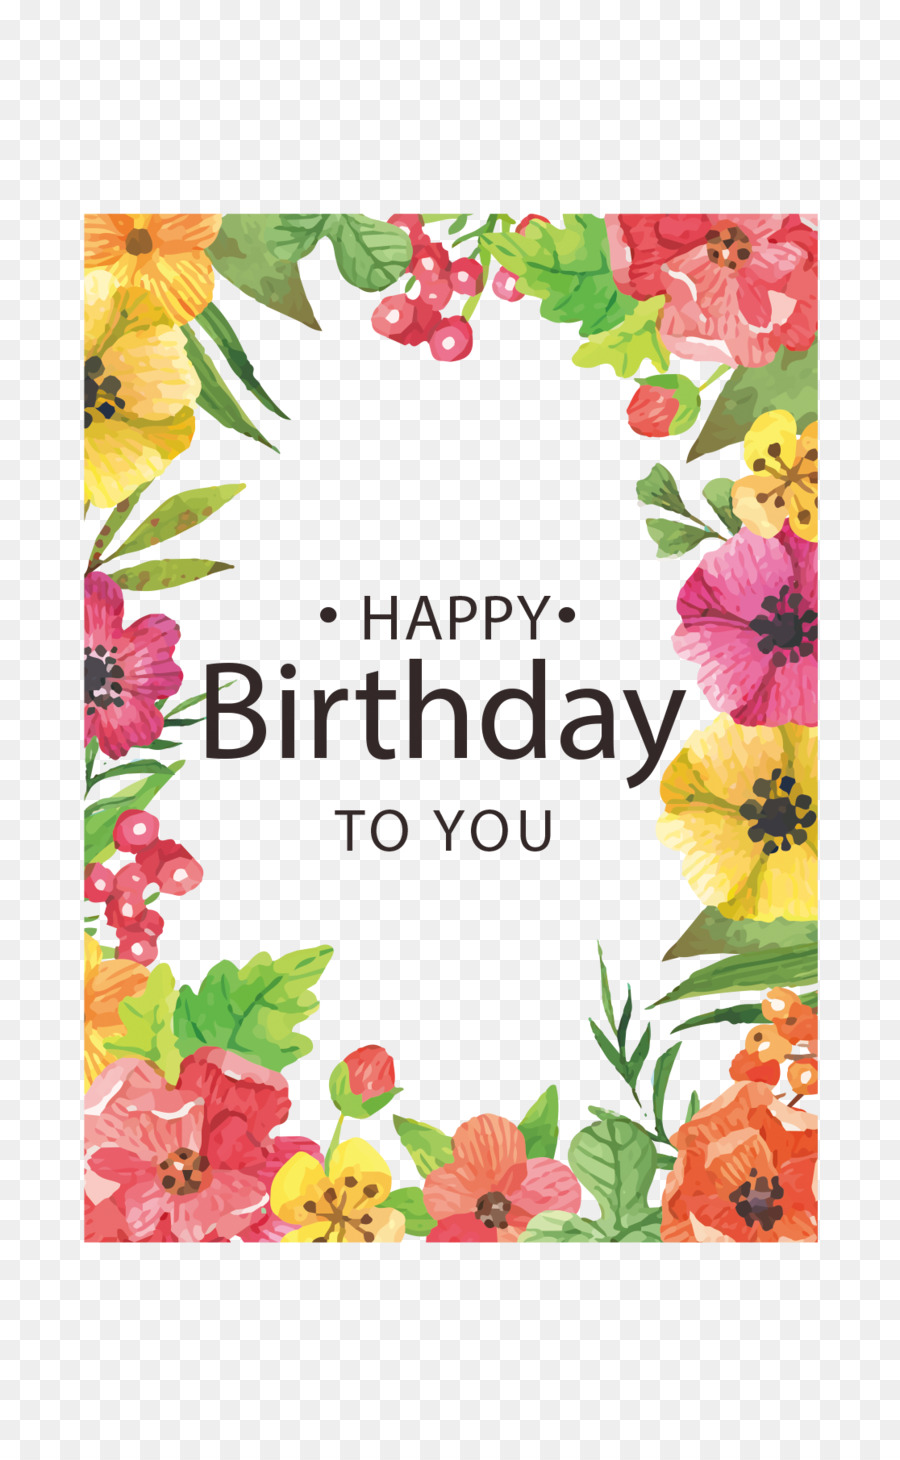 Birthday greeting card clip art happy birthday birthday card birthday greeting card clip art happy birthday birthday card colored flowers izmirmasajfo